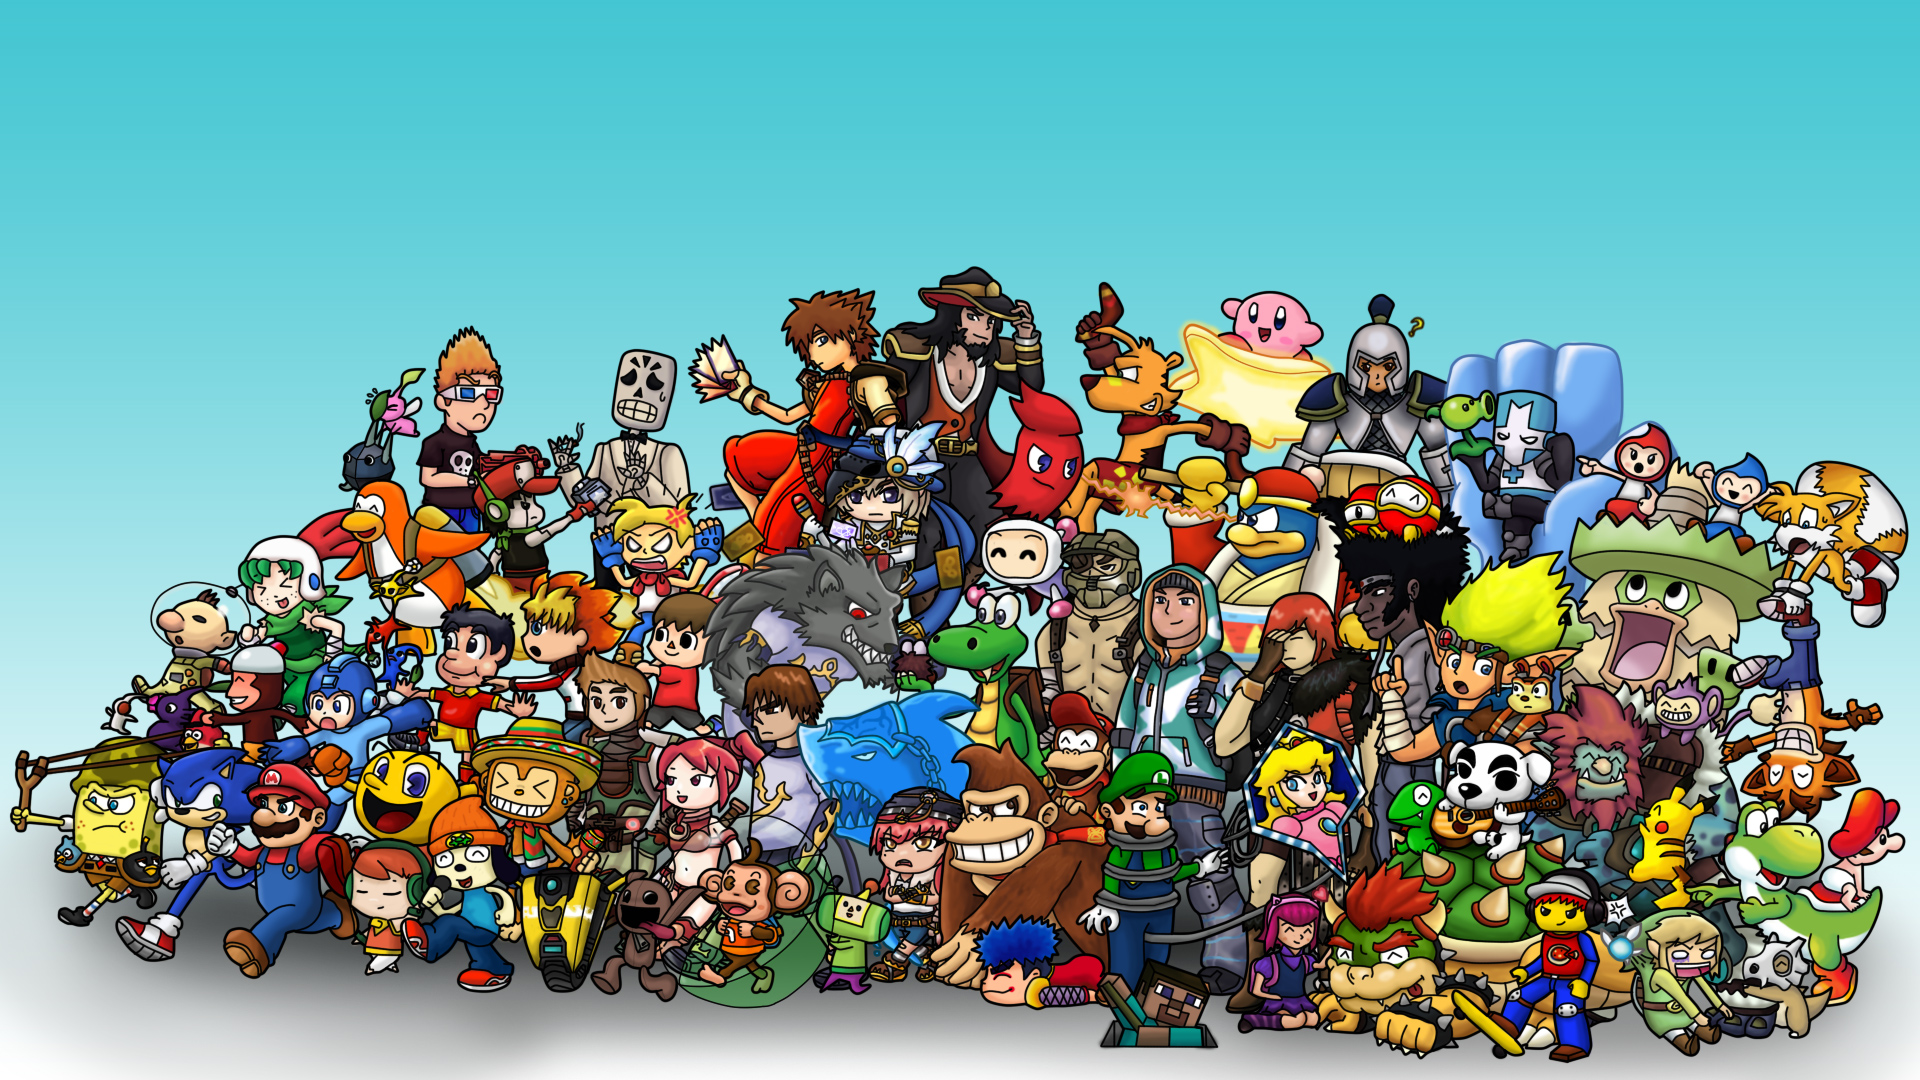 video game wallpaper  great name  by obubblesmansion d6f67r3jpg 1920x1080